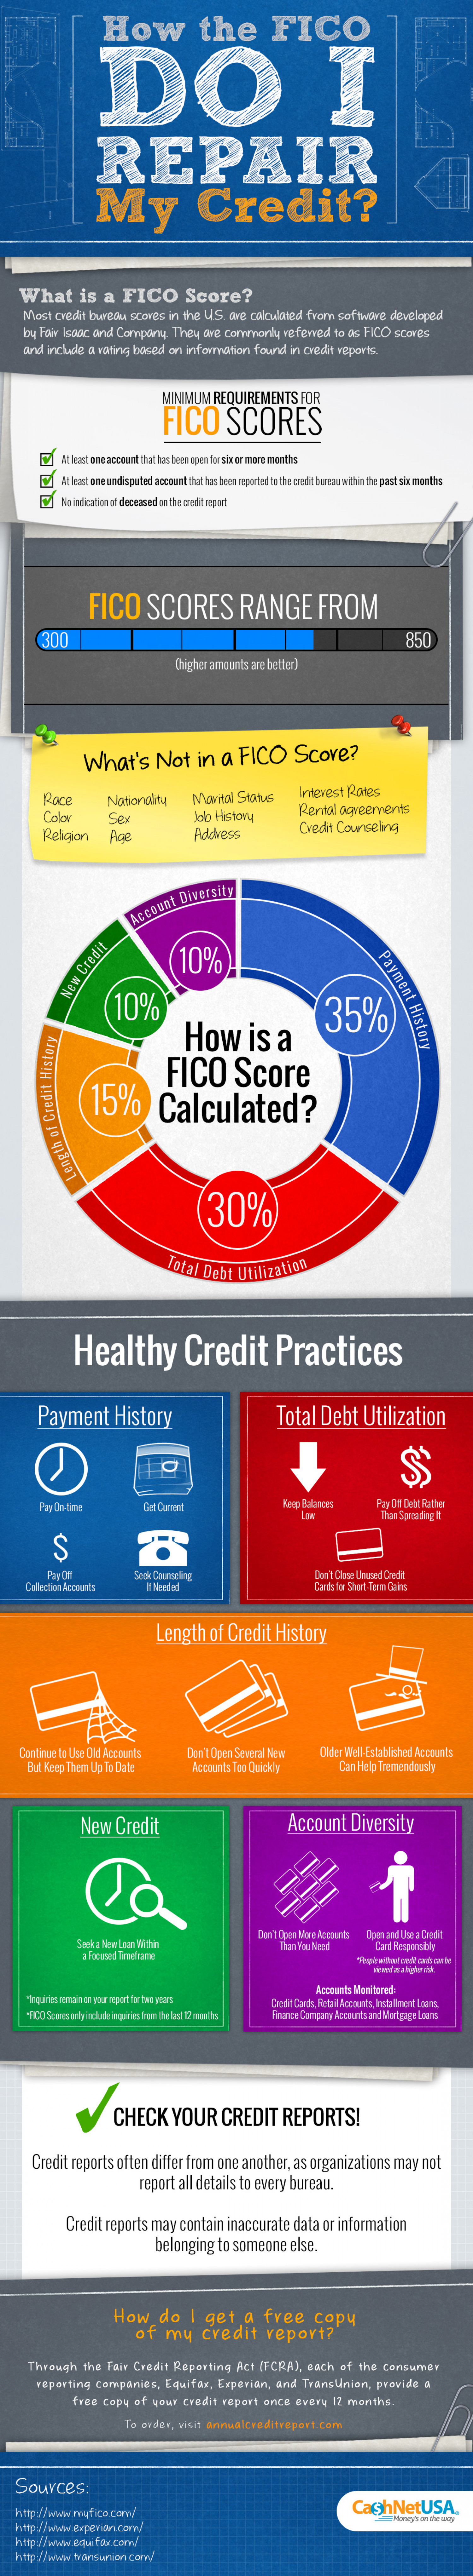 How the FICO Do I Repair My Credit? Infographic